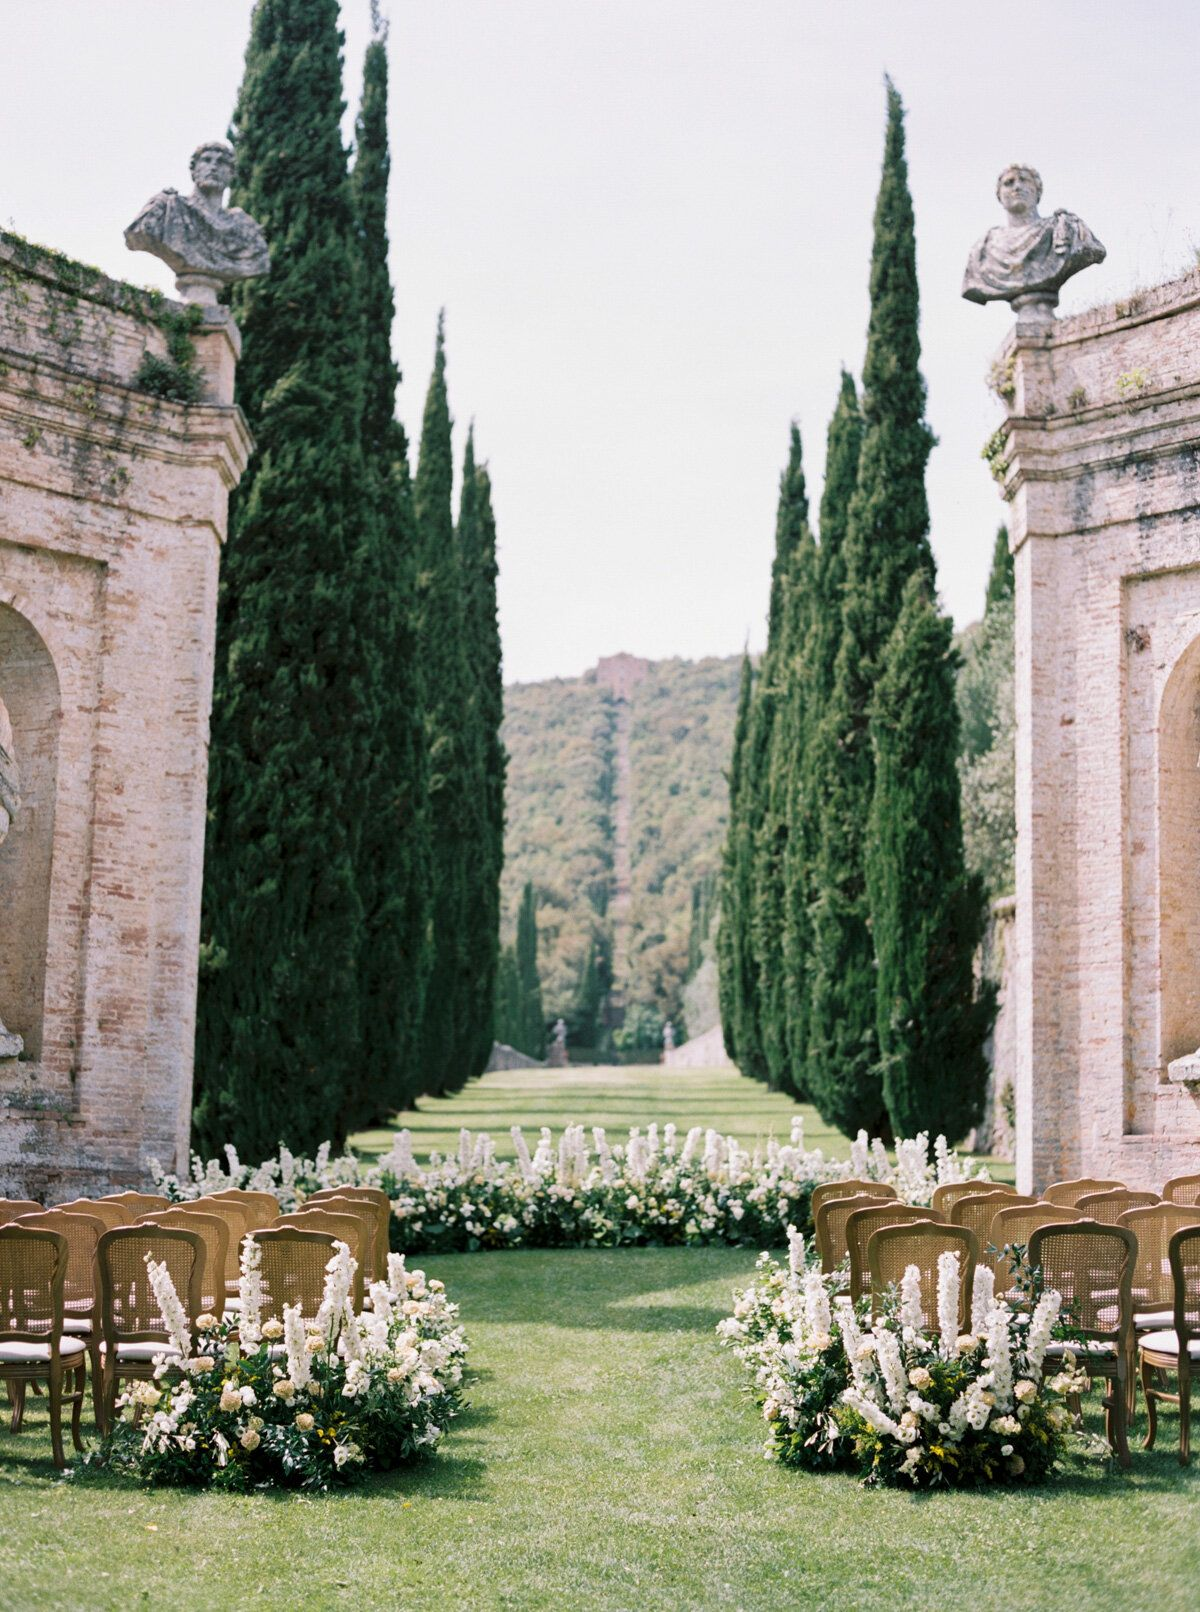 Classic Italian Wedding at Villa Cetinale in Tuscany, Italy  — katie grant photography